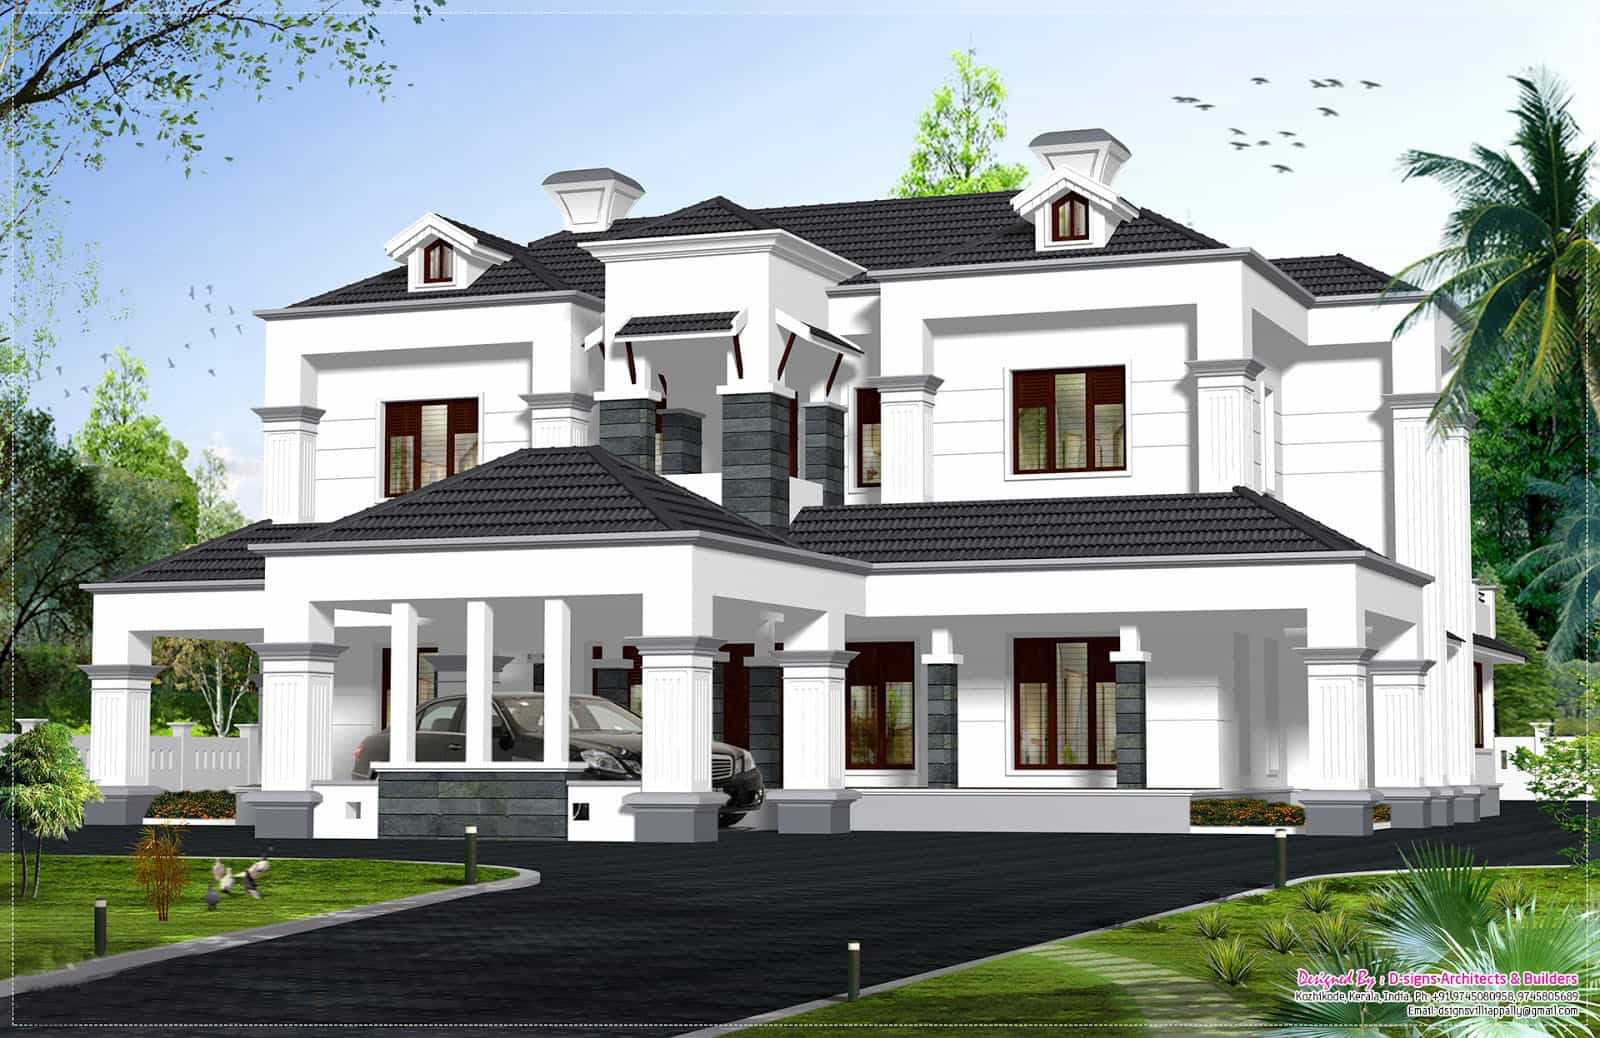 Low cost house in kerala with plan photos 991 sq ft khp for New house styles pictures